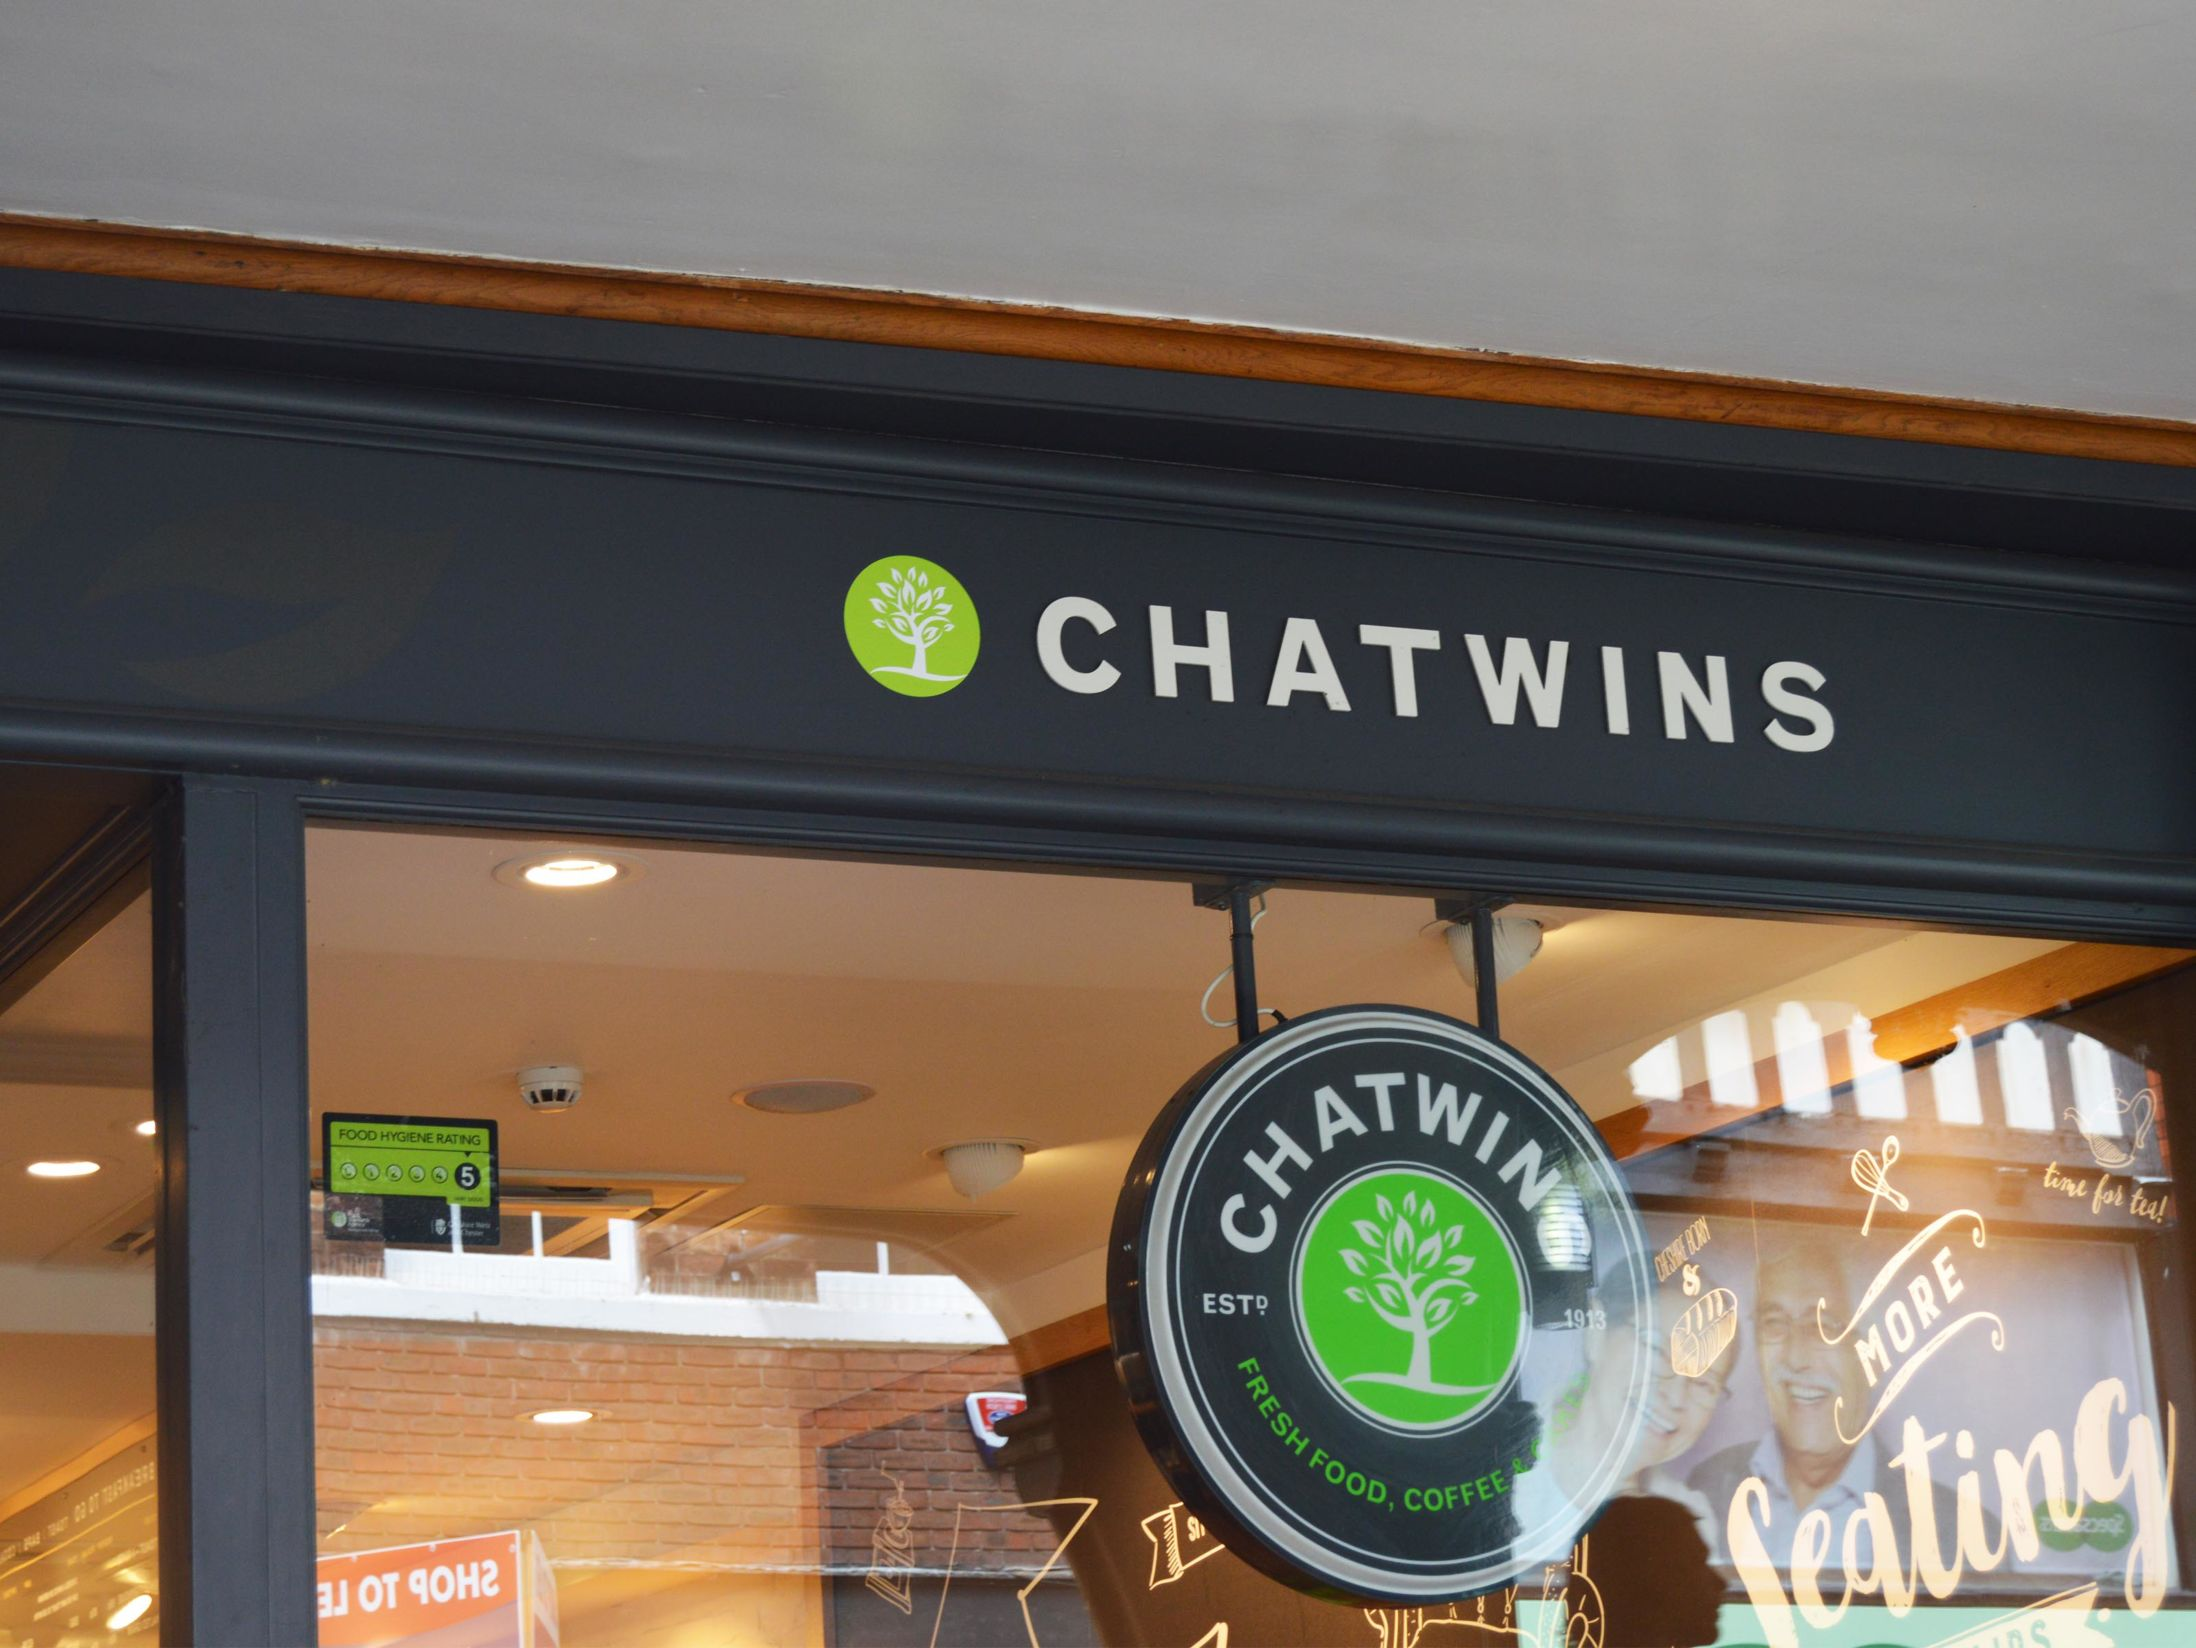 Chatwins - Best Breakfast in Chester